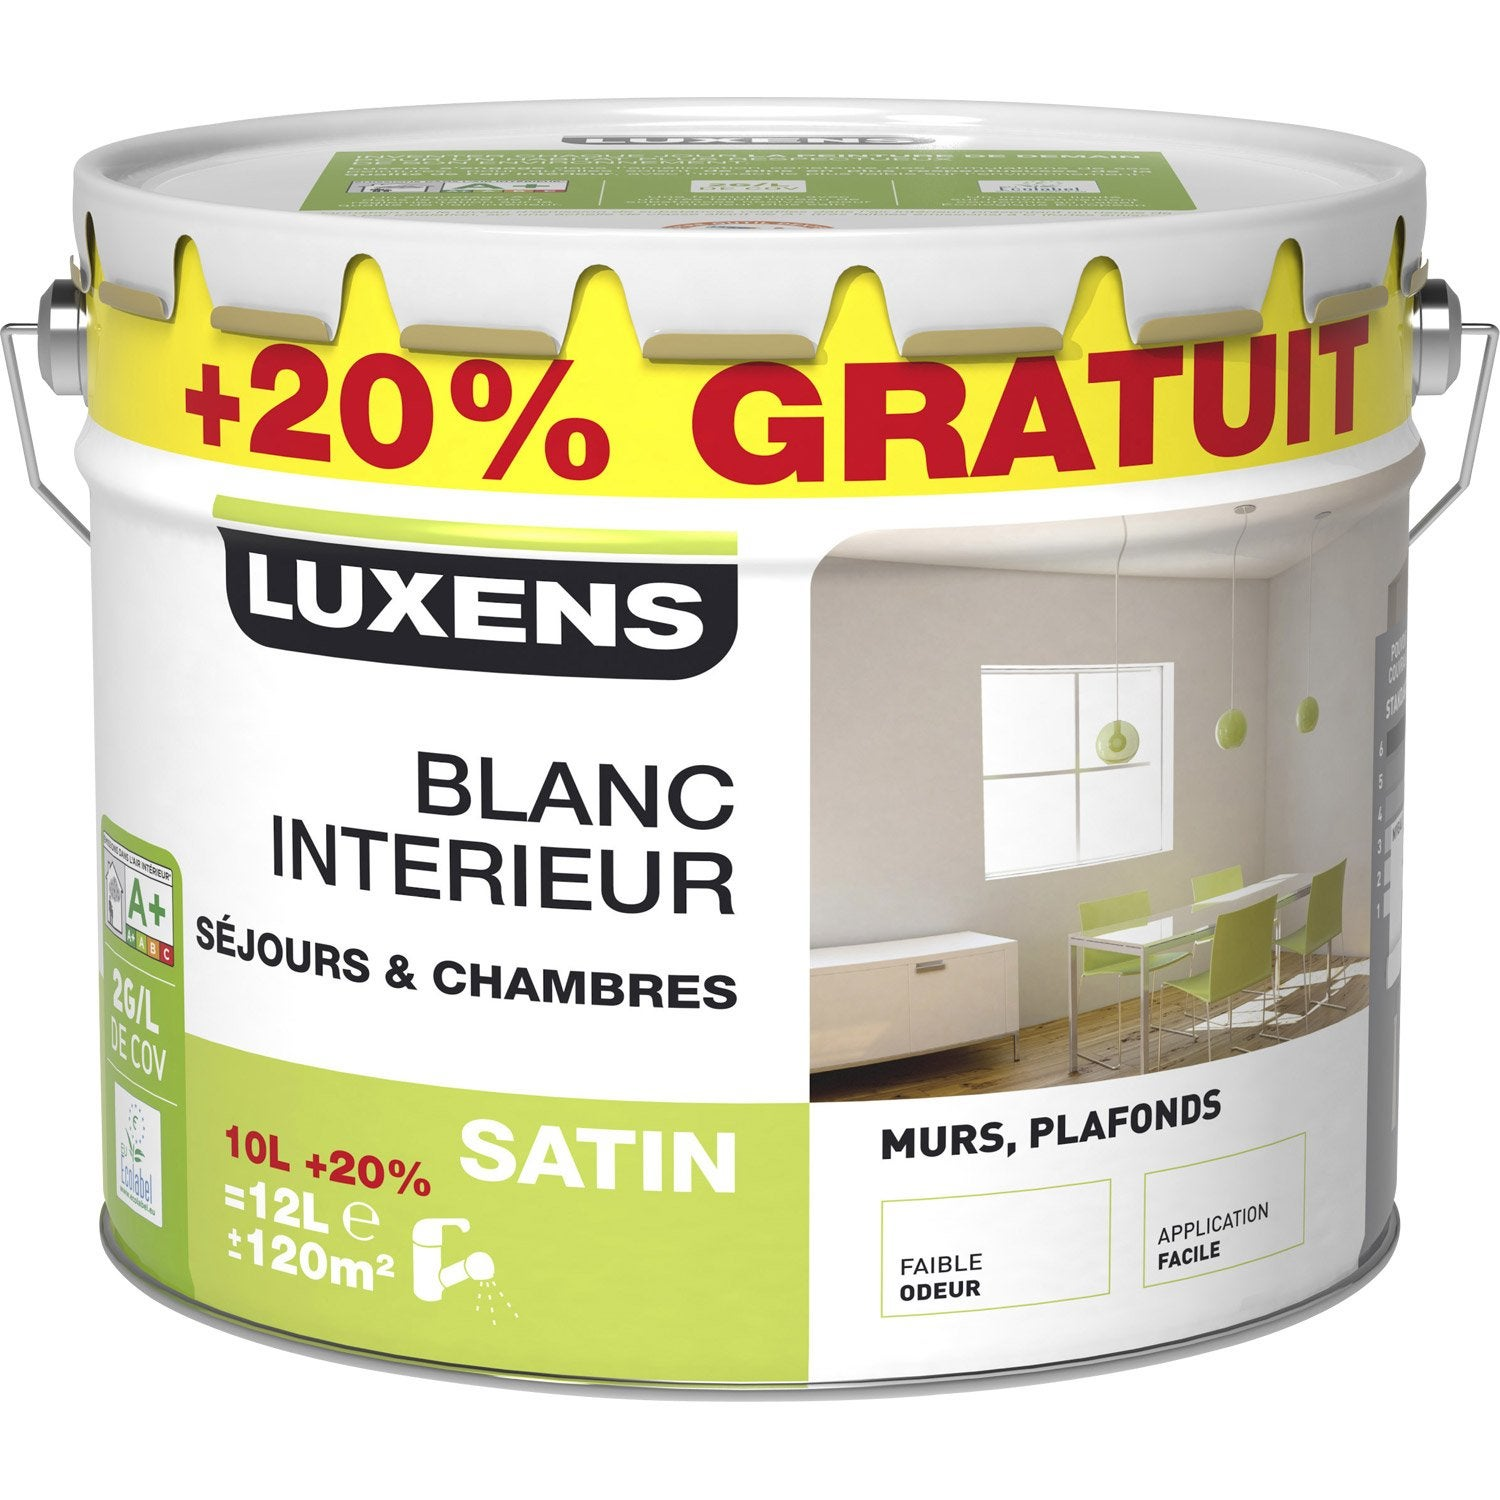 peinture blanc int rieur mur et plafond luxens 10l 20 gratuit leroy merlin. Black Bedroom Furniture Sets. Home Design Ideas